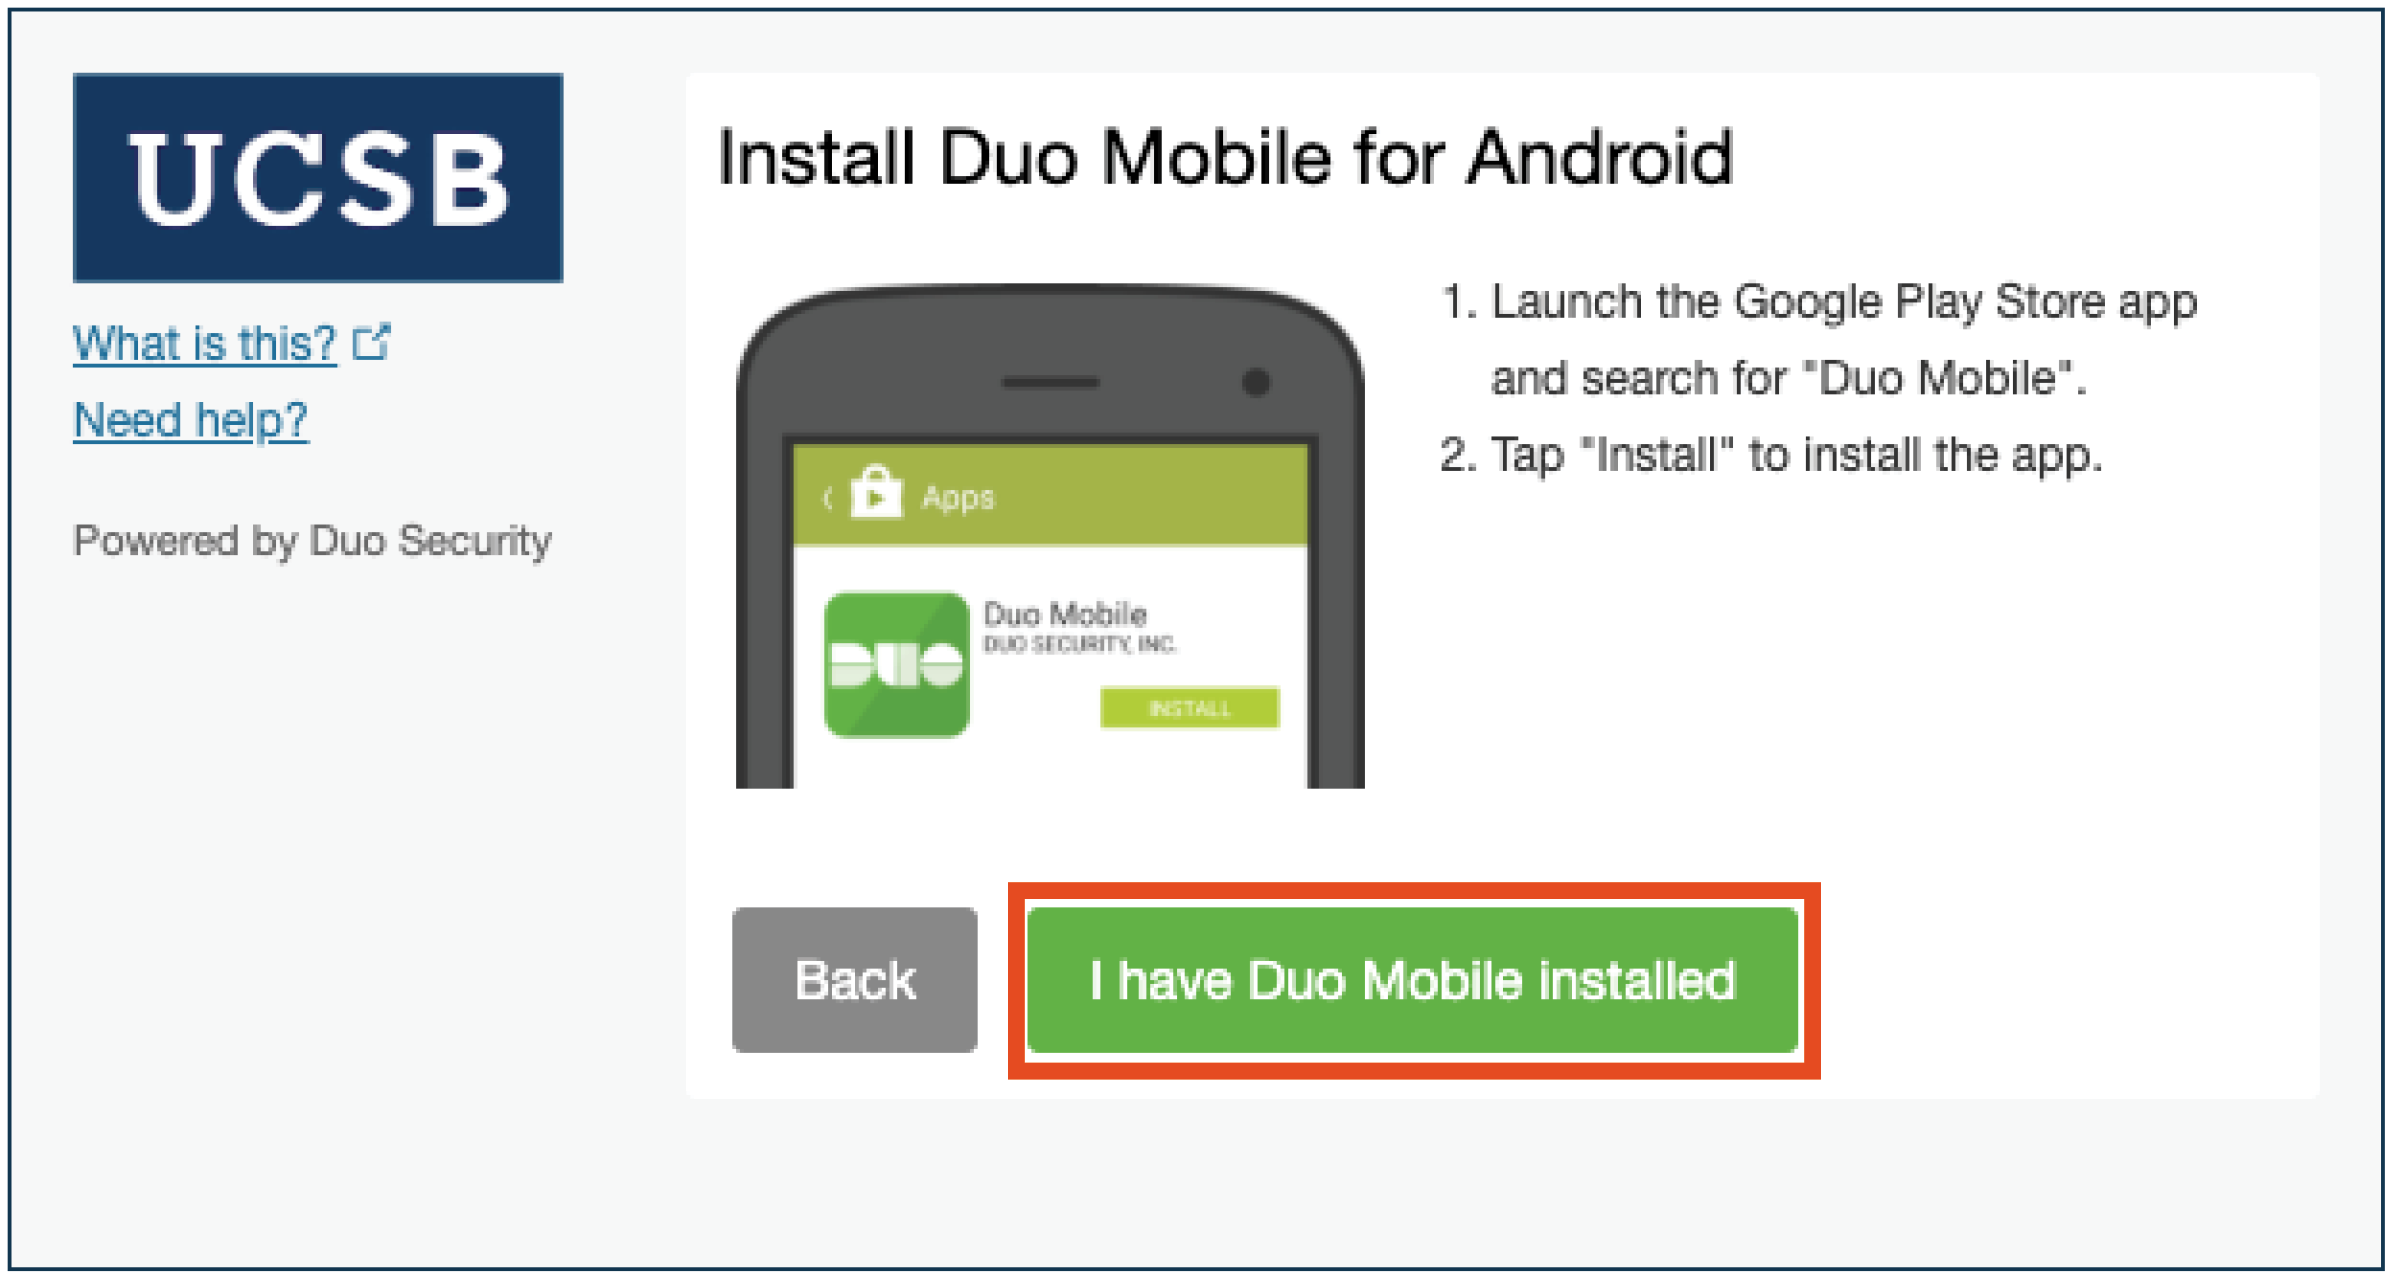 I have Duo Mobile installed selection